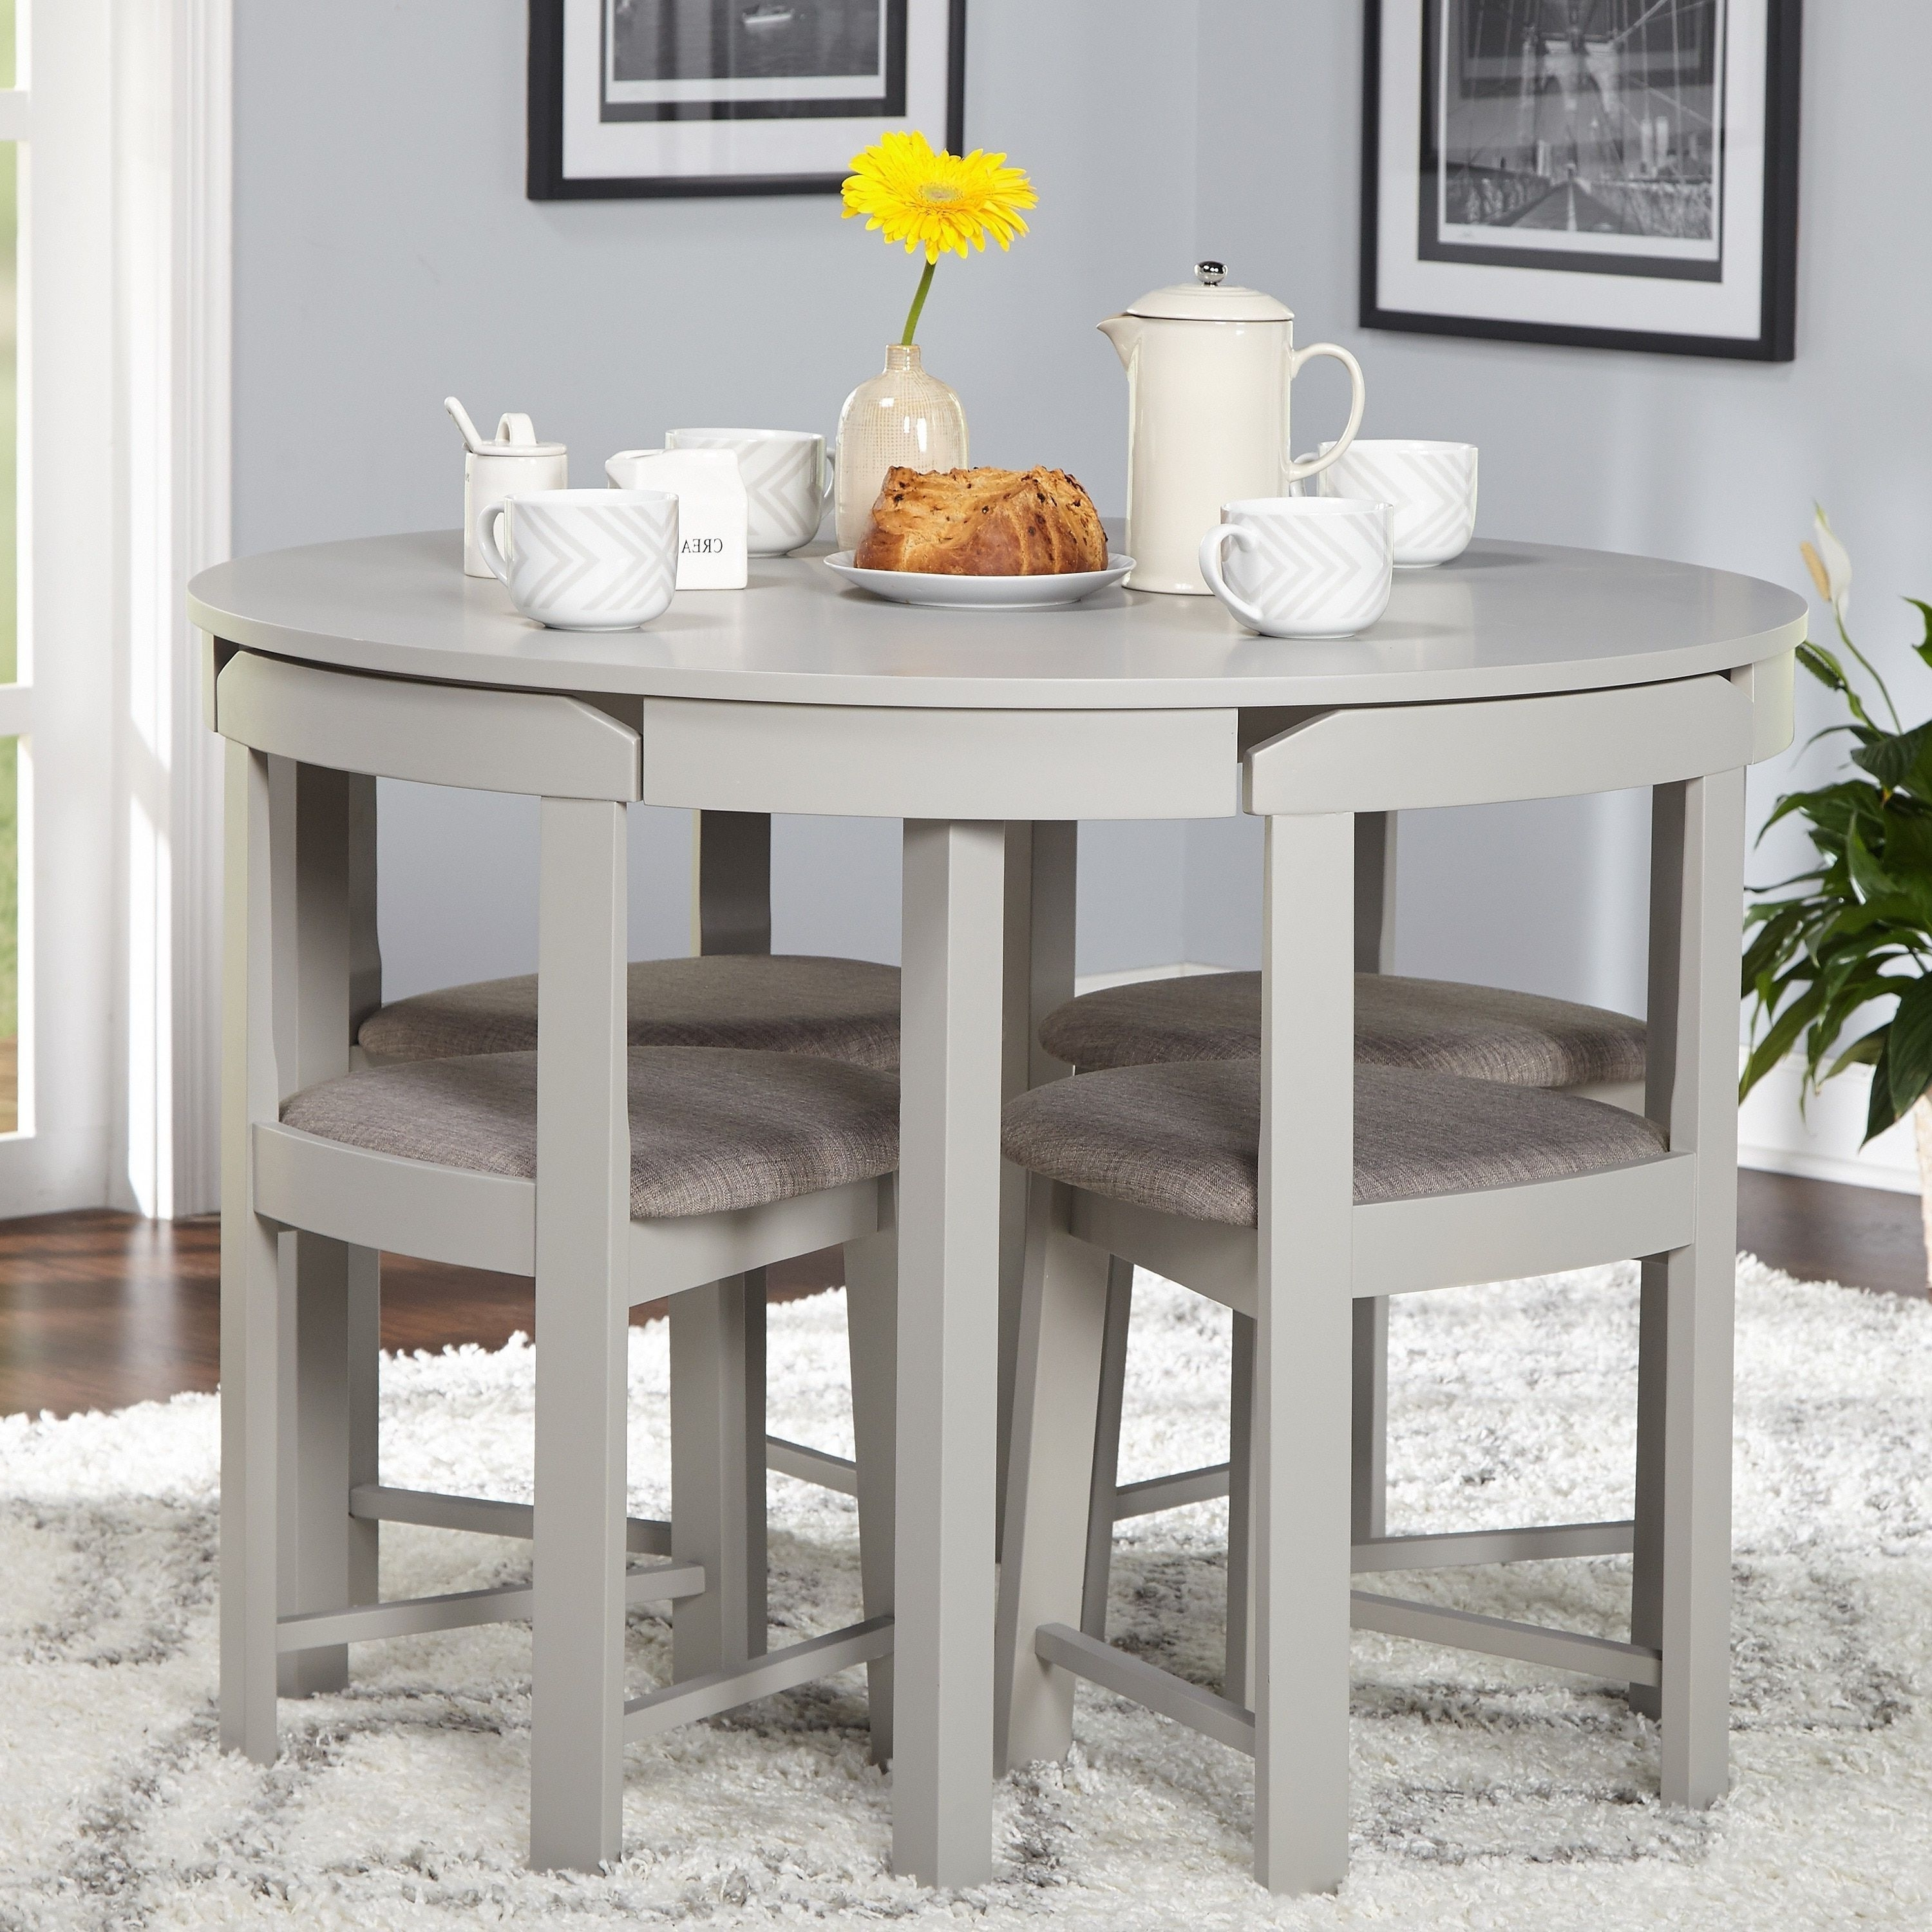 Perfect For Smaller Spaces The 5 Piece Tobey Compact Dining Set Intended For Popular Lassen Extension Rectangle Dining Tables (View 6 of 25)